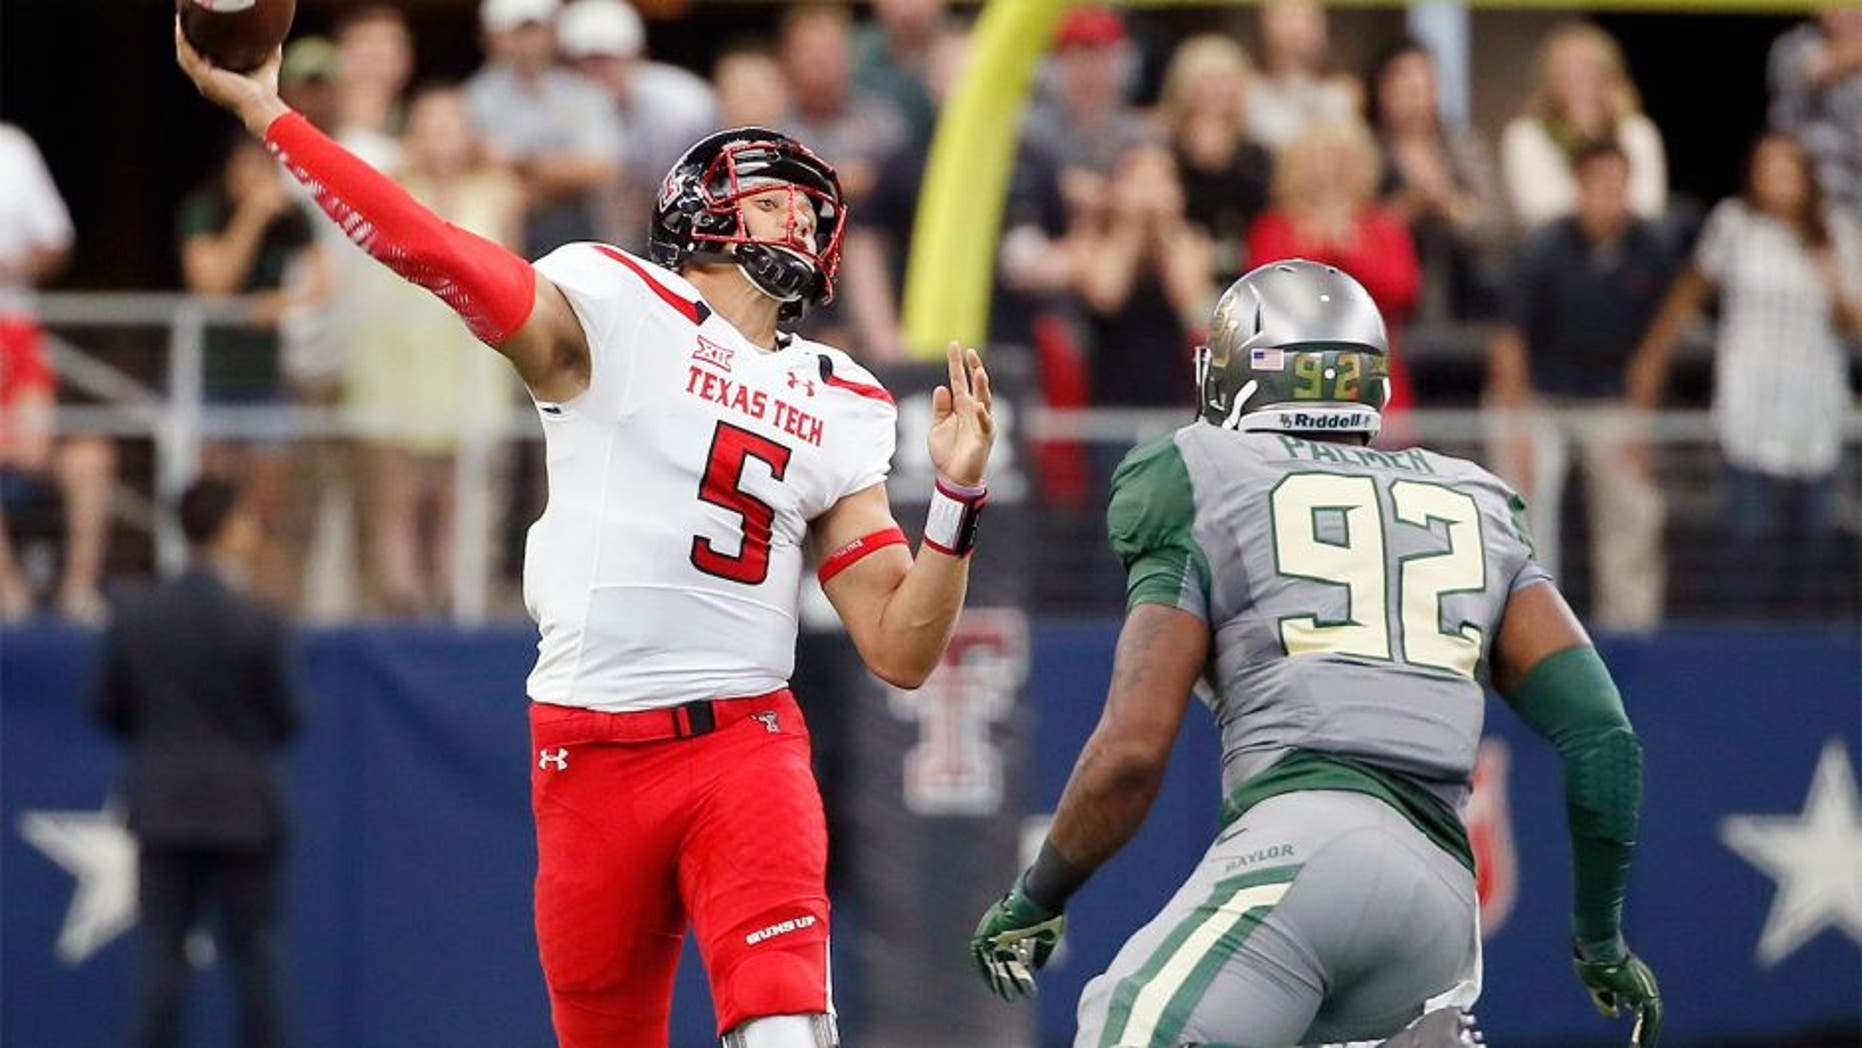 Texas Tech quarterback Patrick Mahomes (5) throws a long touchdown pass to wide receiver Zach Austin under pressure from Baylor defensive end Jamal Palmer (92) in the first half of an NCAA college football game Saturday, Oct. 3, 2015, in Arlington, Texas. (AP Photo/Tony Gutierrez)